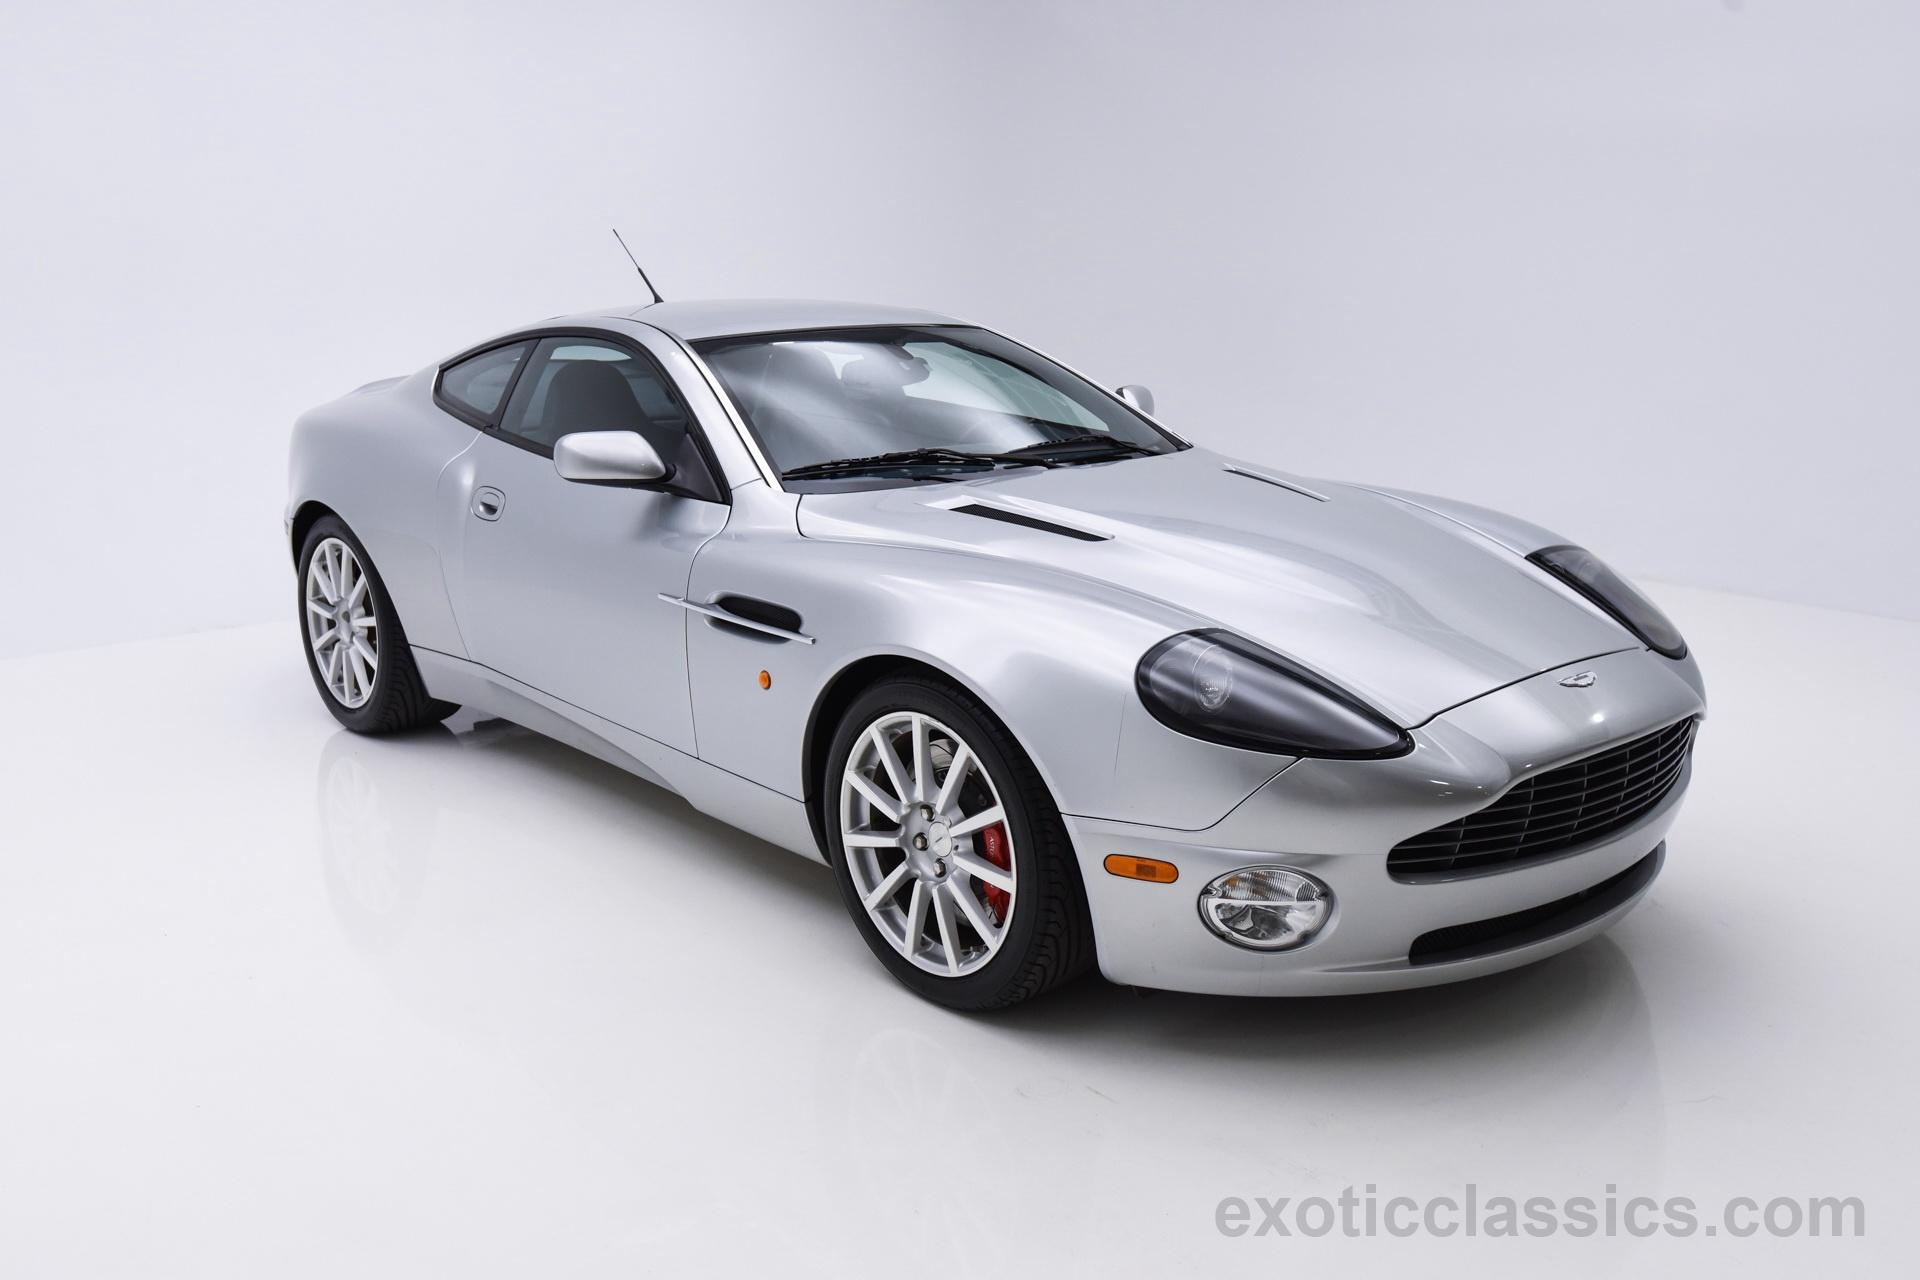 2006 aston martin vanquish s - exotic and classic car dealership